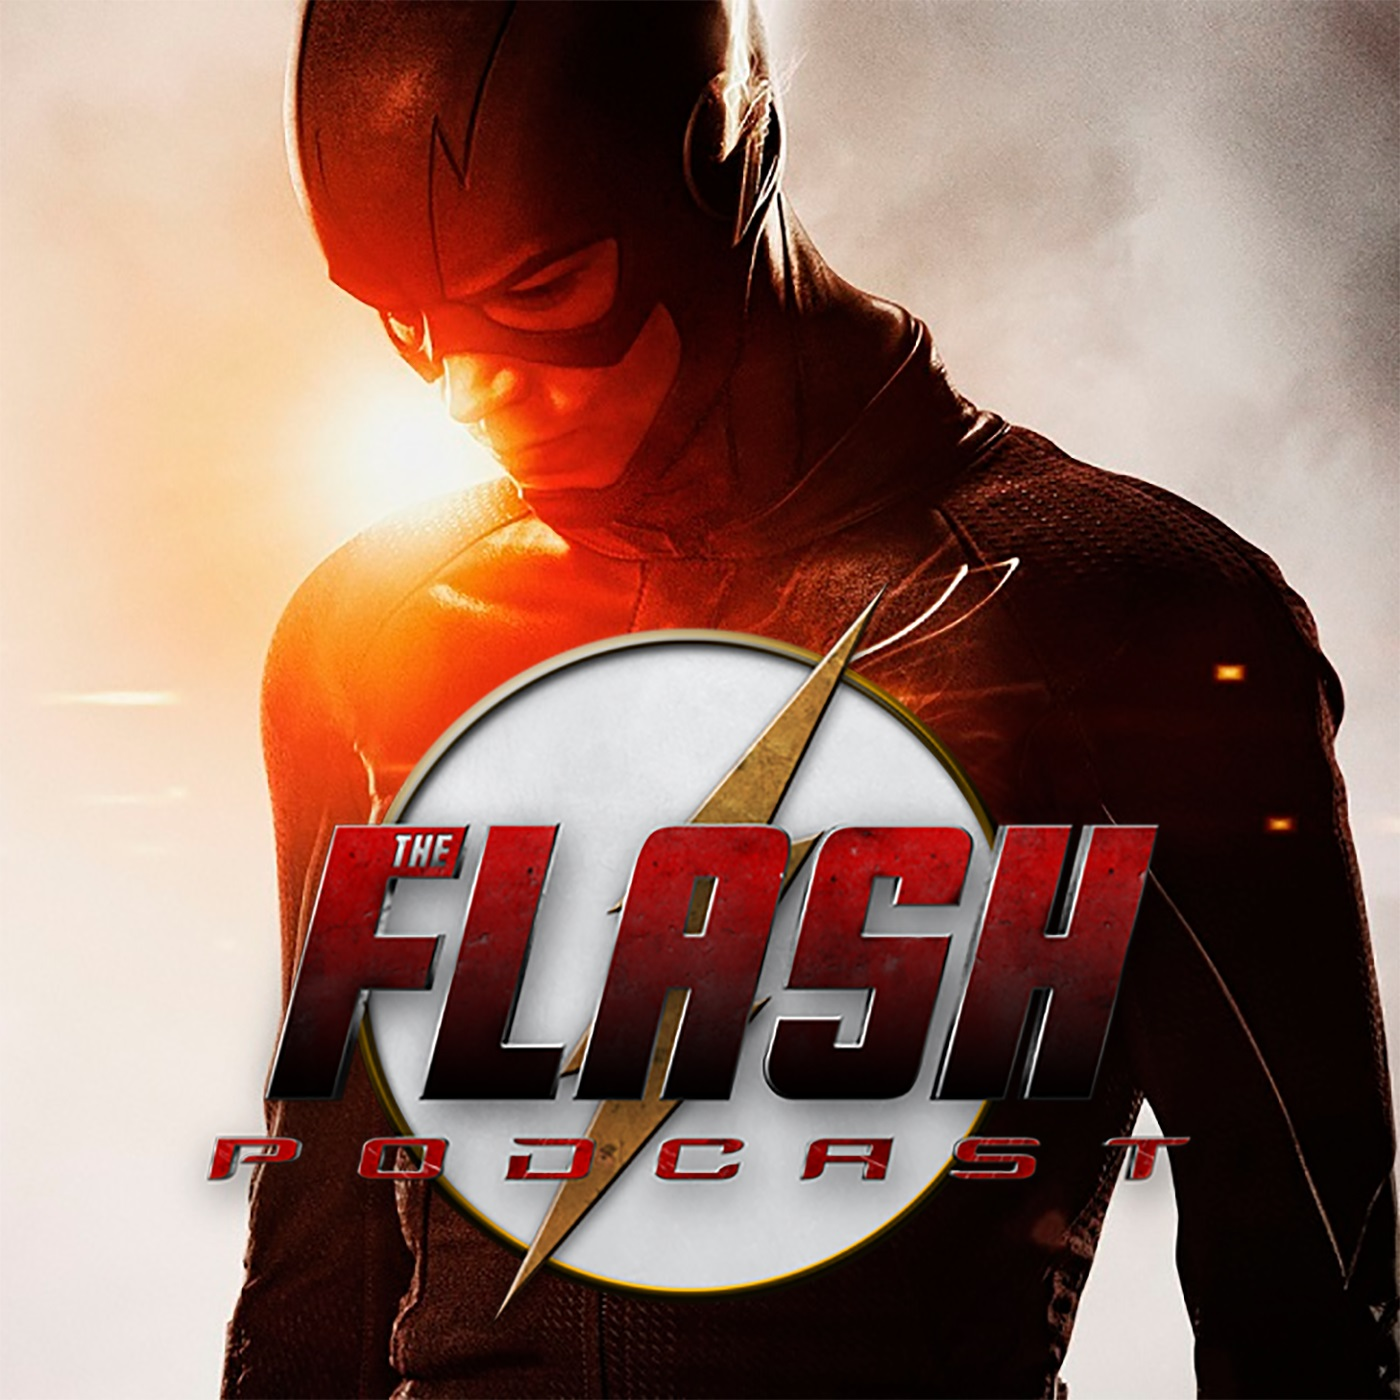 The Flash Podcast Season 2.5 - Episode 7: Iris West In Season 2